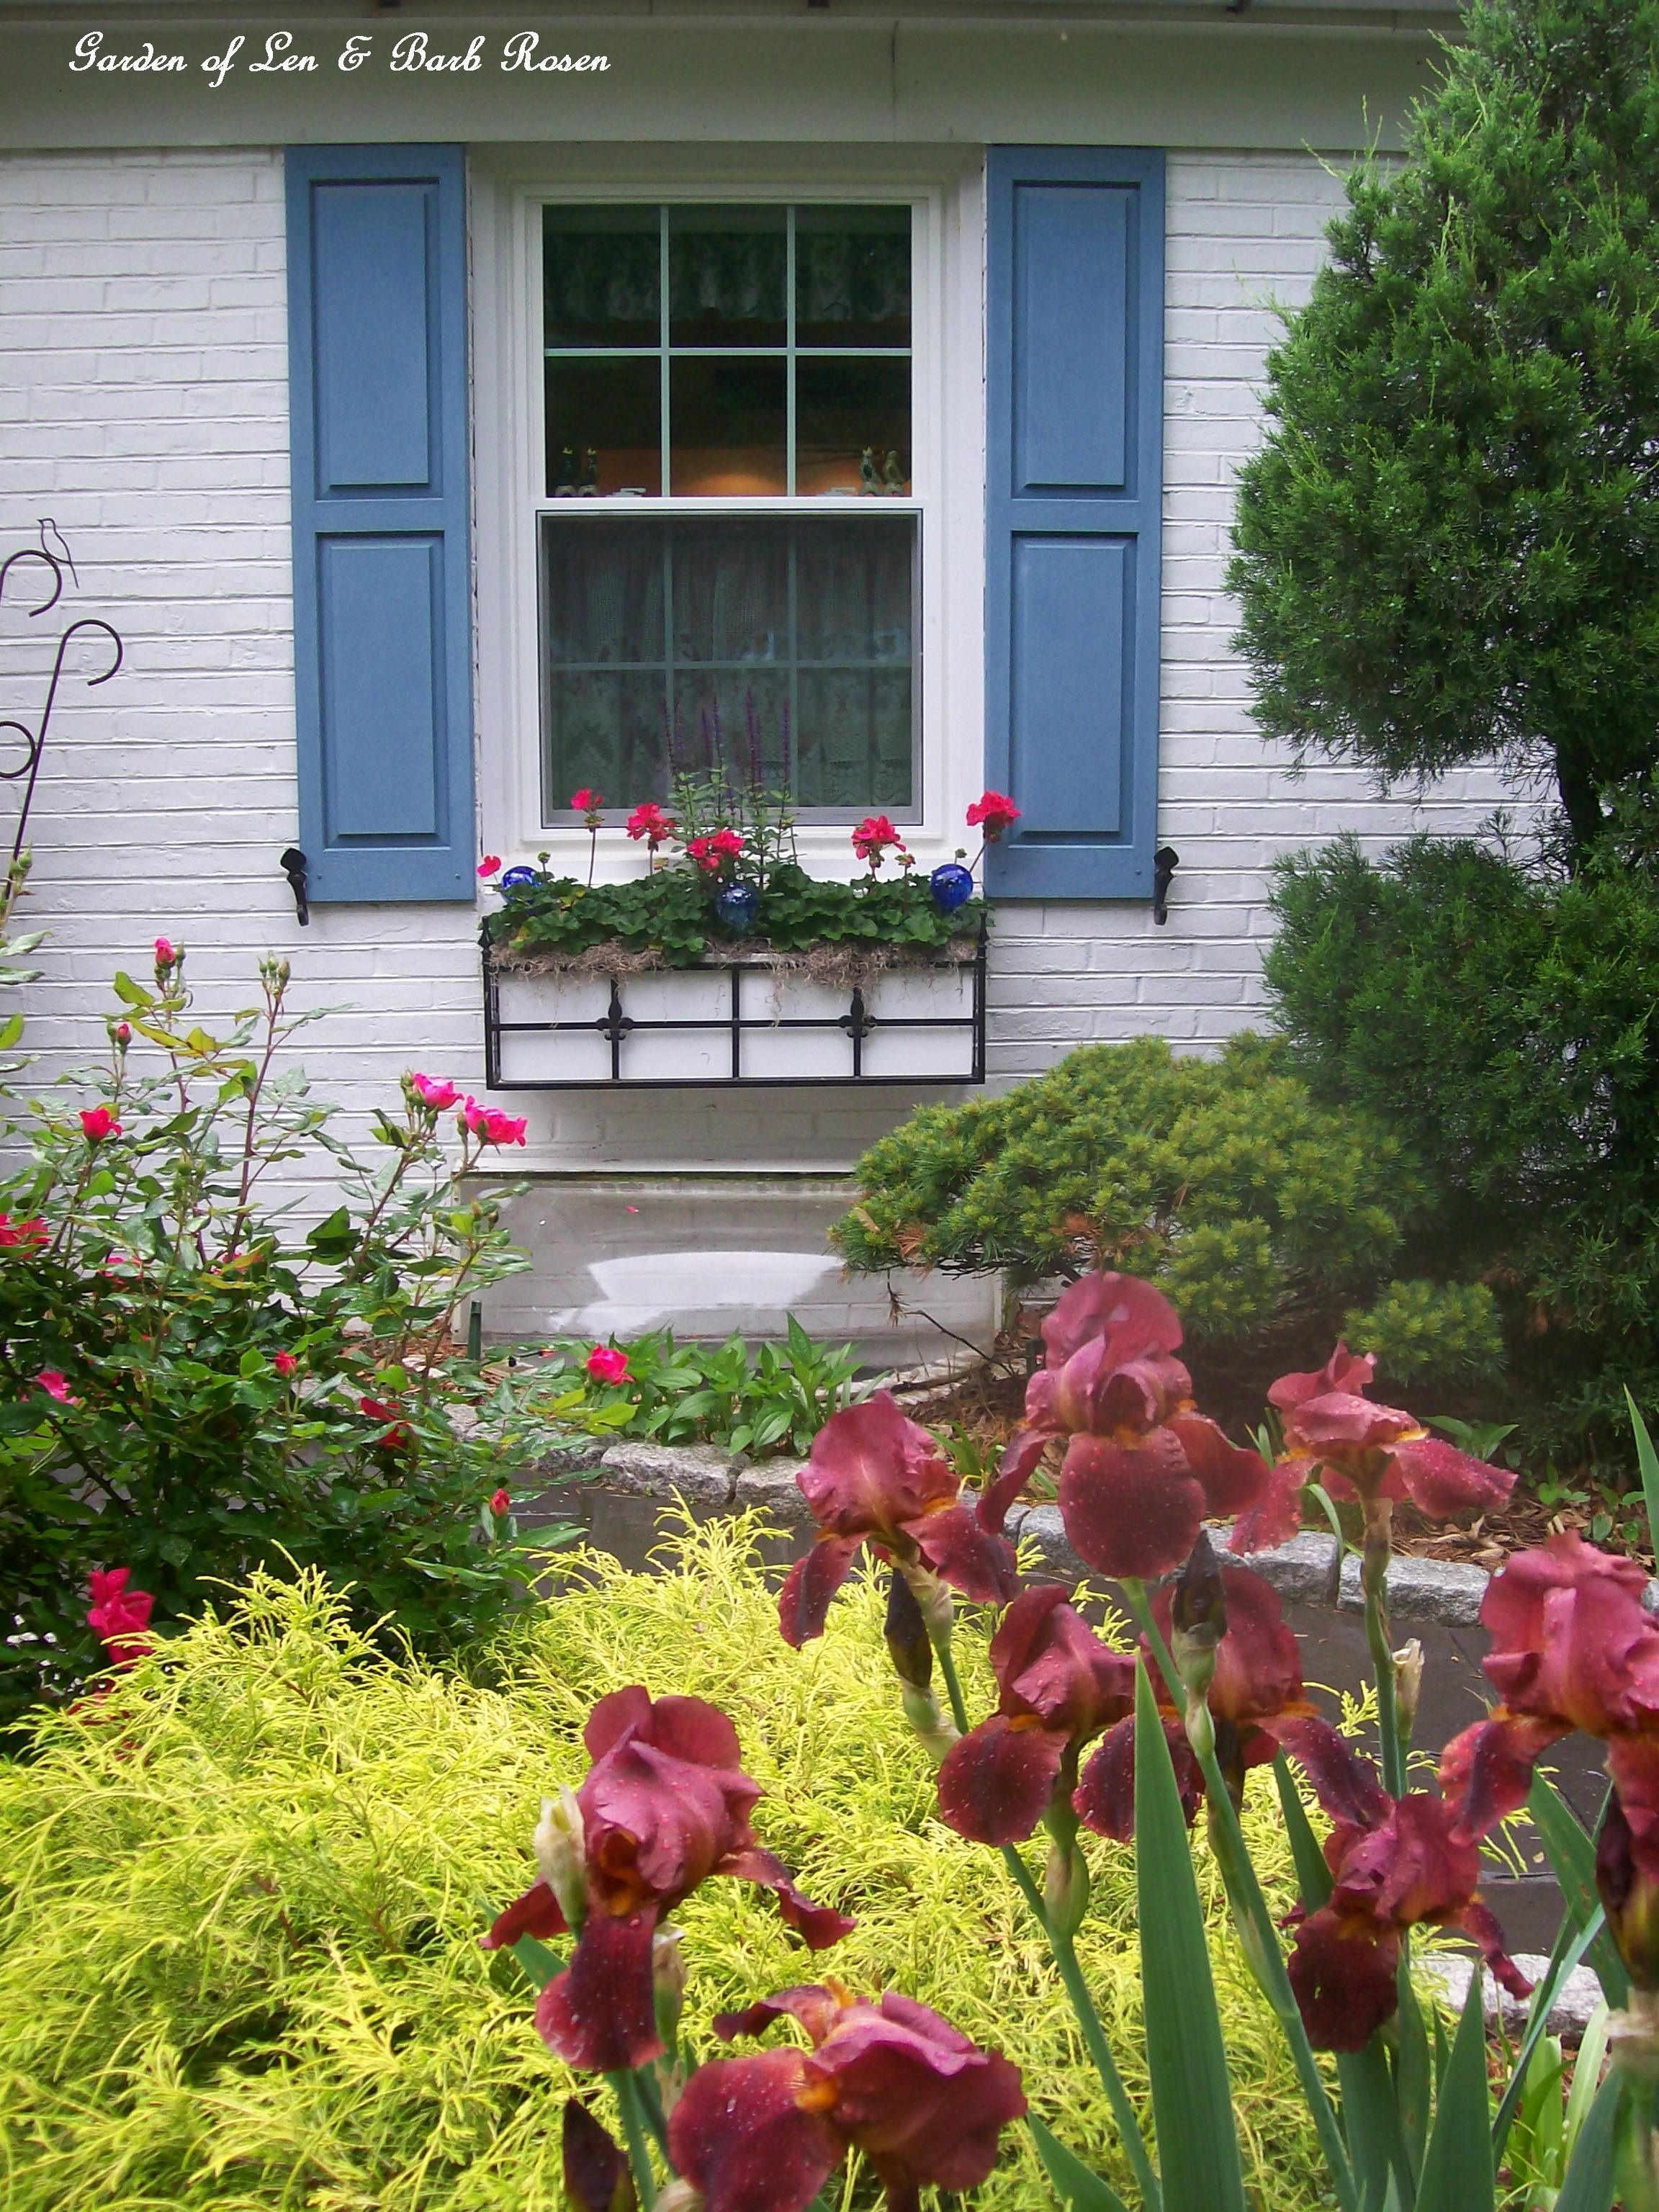 Summer window box (Garden of Len & Barb Rosen) #knockoutrosen Summer window box (Garden of Len & Barb Rosen) #knockoutrosen Summer window box (Garden of Len & Barb Rosen) #knockoutrosen Summer window box (Garden of Len & Barb Rosen) #knockoutrosen Summer window box (Garden of Len & Barb Rosen) #knockoutrosen Summer window box (Garden of Len & Barb Rosen) #knockoutrosen Summer window box (Garden of Len & Barb Rosen) #knockoutrosen Summer window box (Garden of Len & Barb Rosen) #knockoutrosen